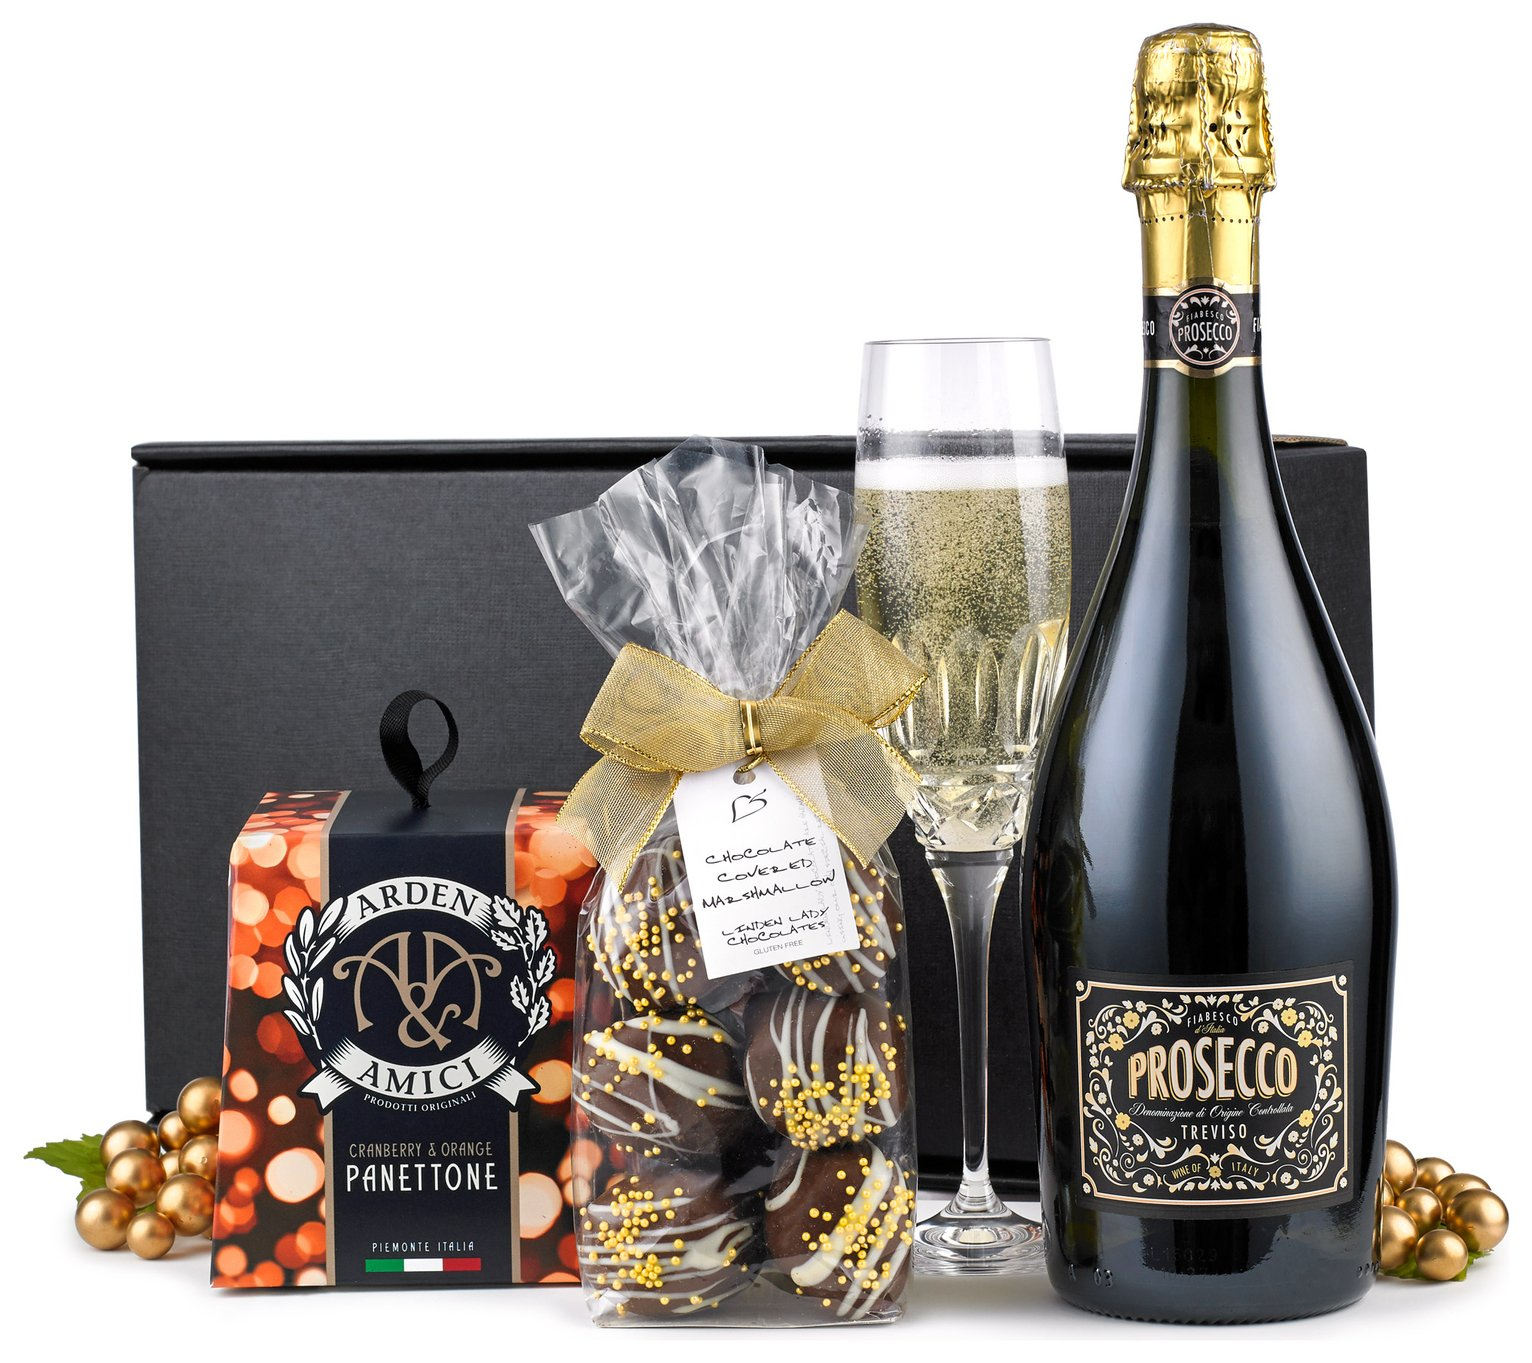 Lanchester Gifts Prosecco and Panettone